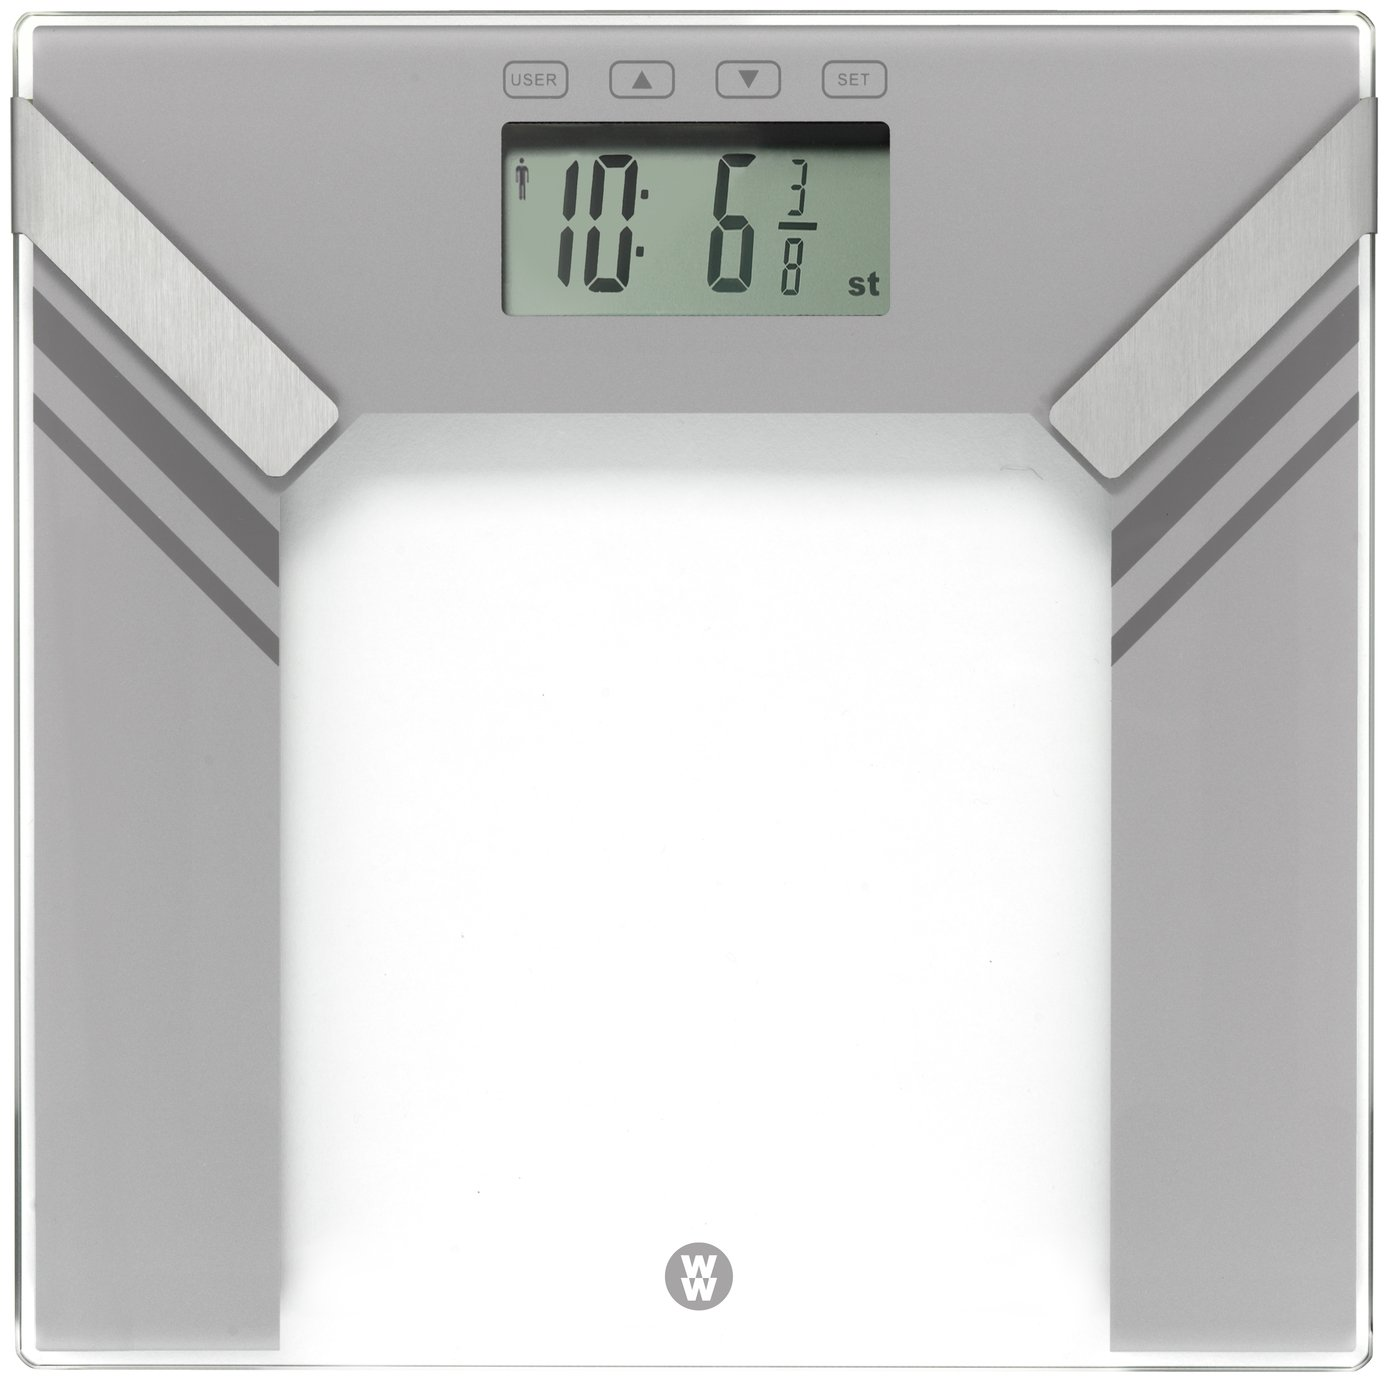 Weight Watchers Ultra Slim Body Analyser Scales review